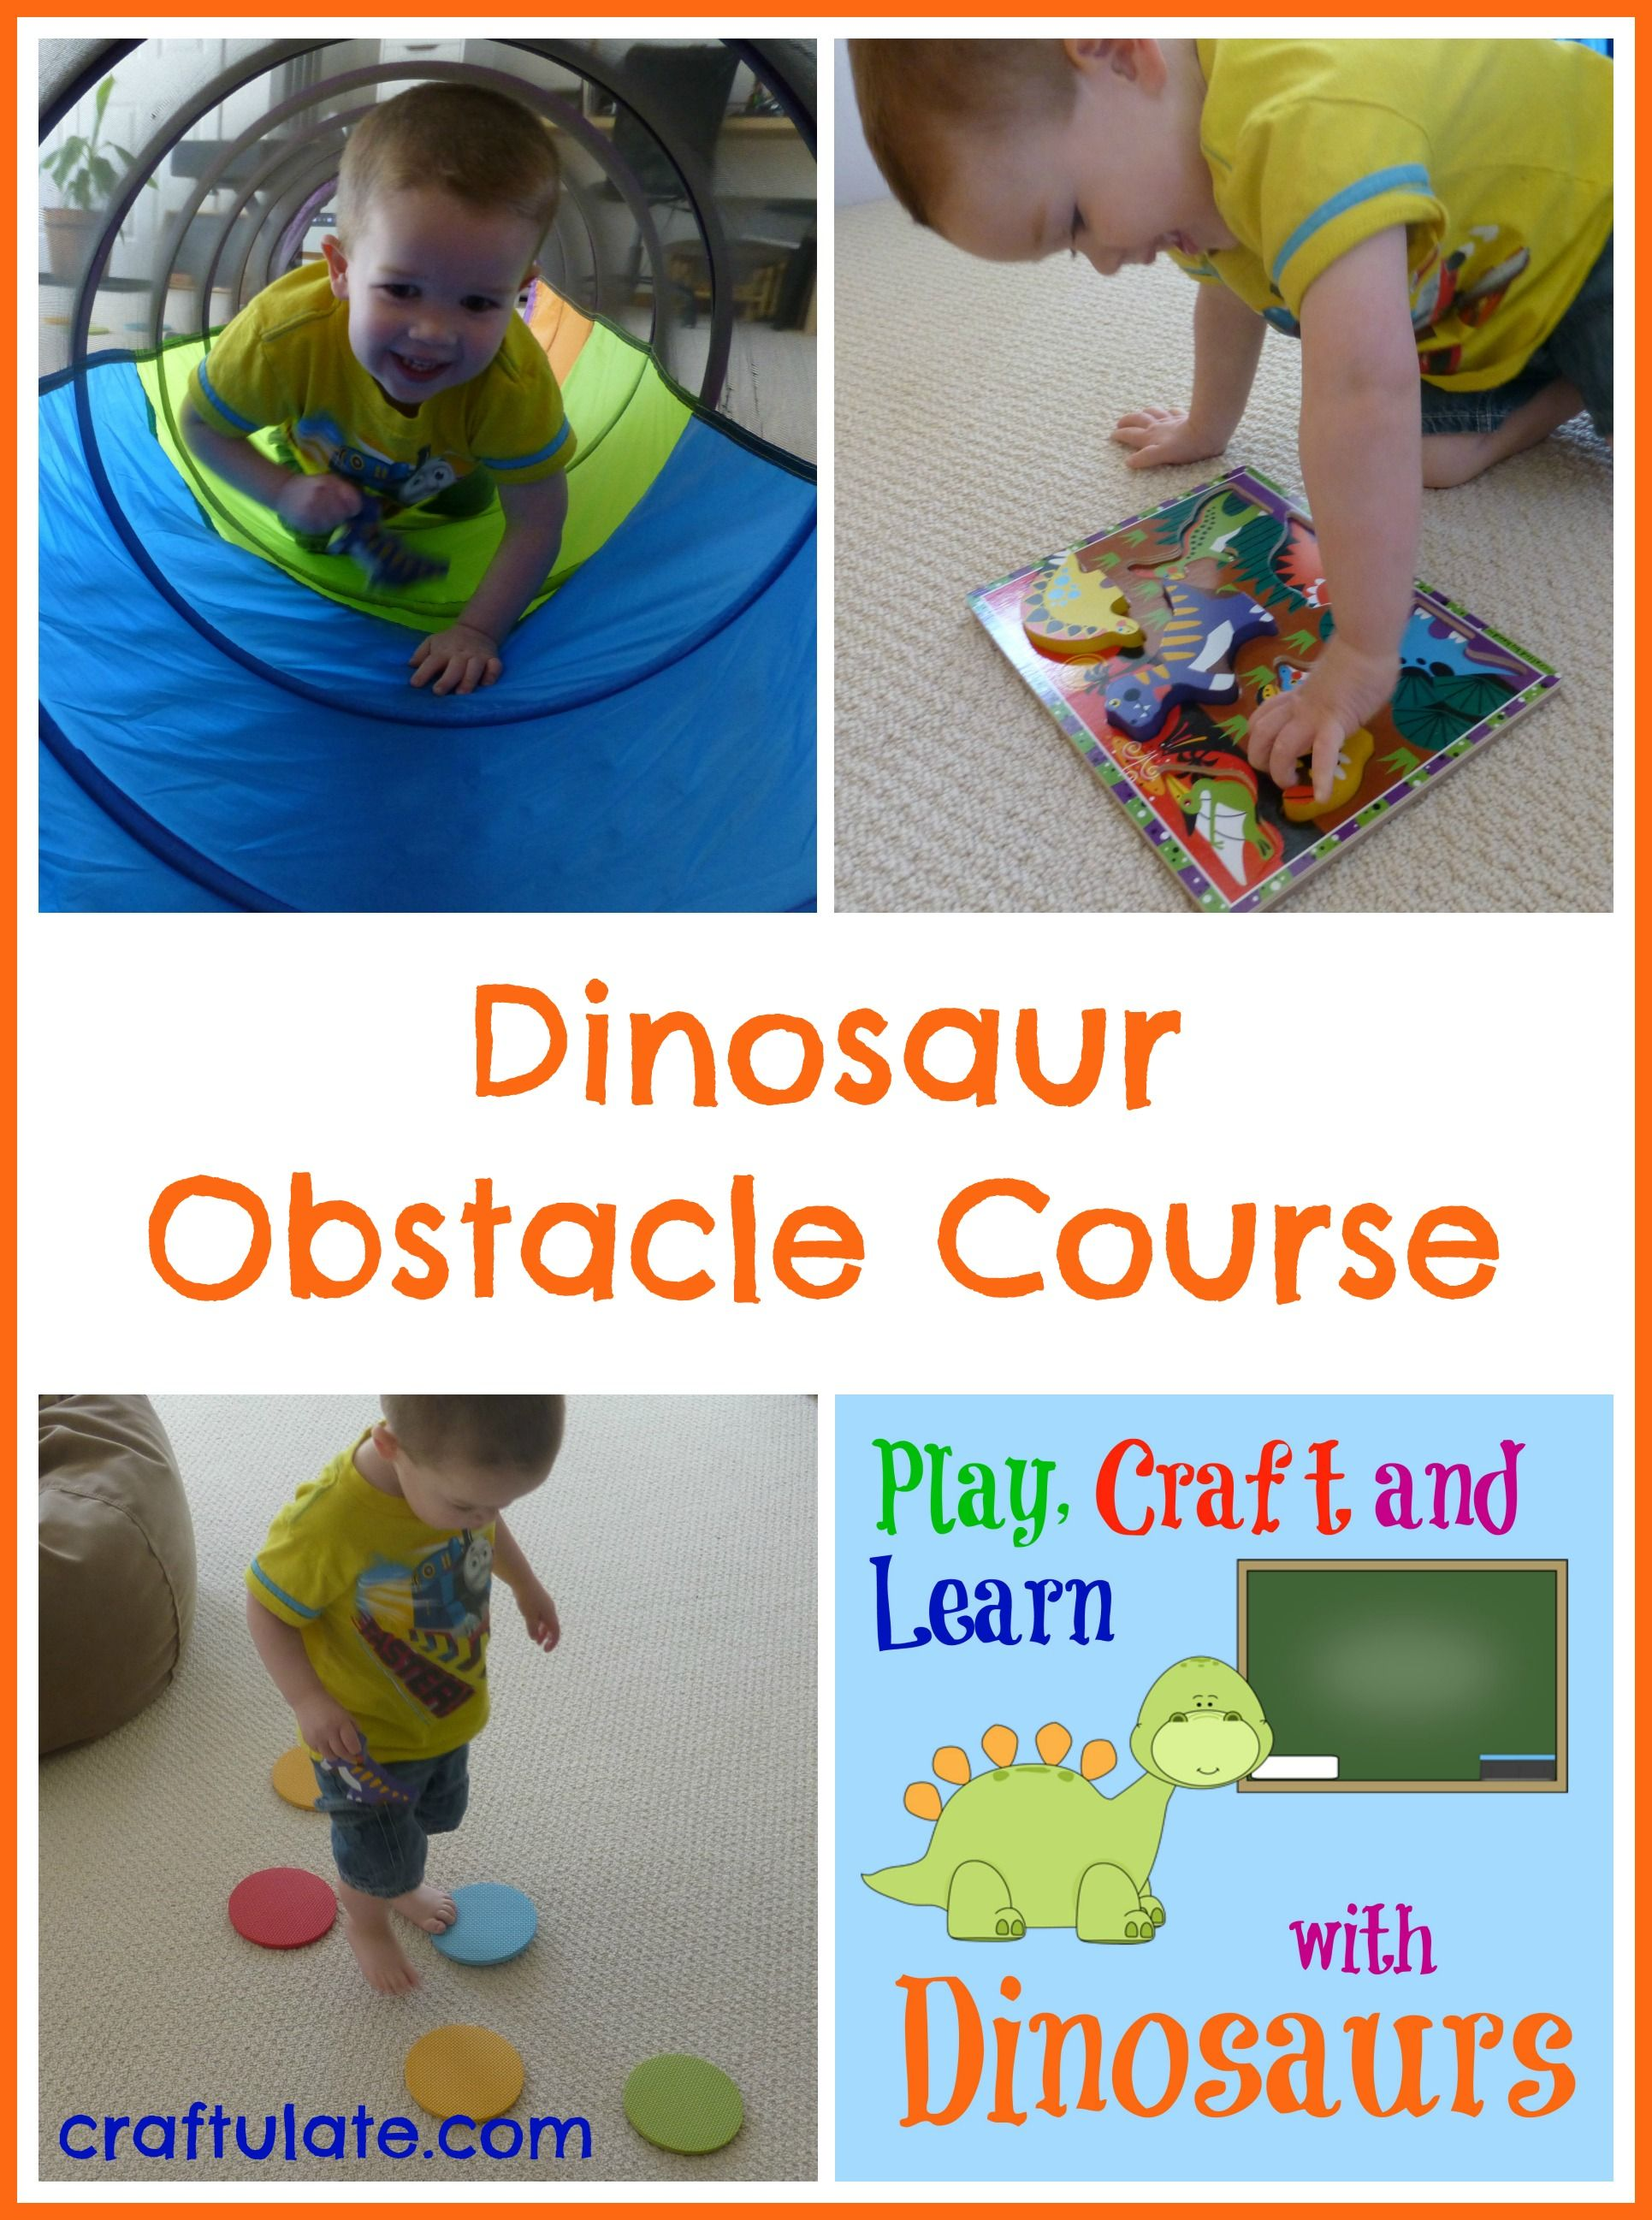 Dinosaur Obstacle Course